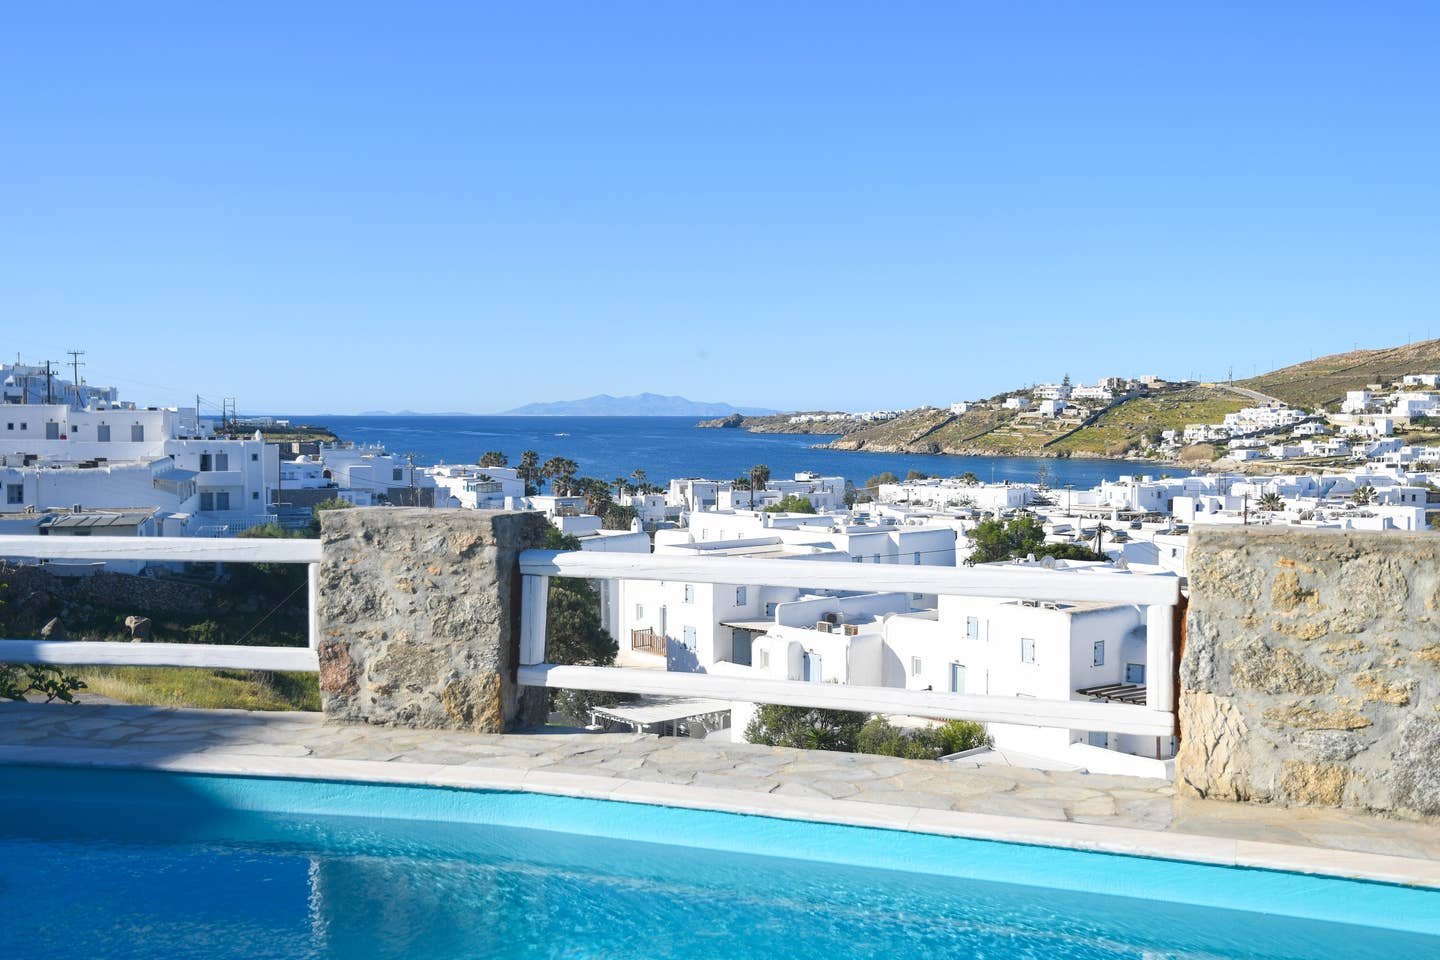 Mykonos House with Pool - Mykonos Airbnbs 2020